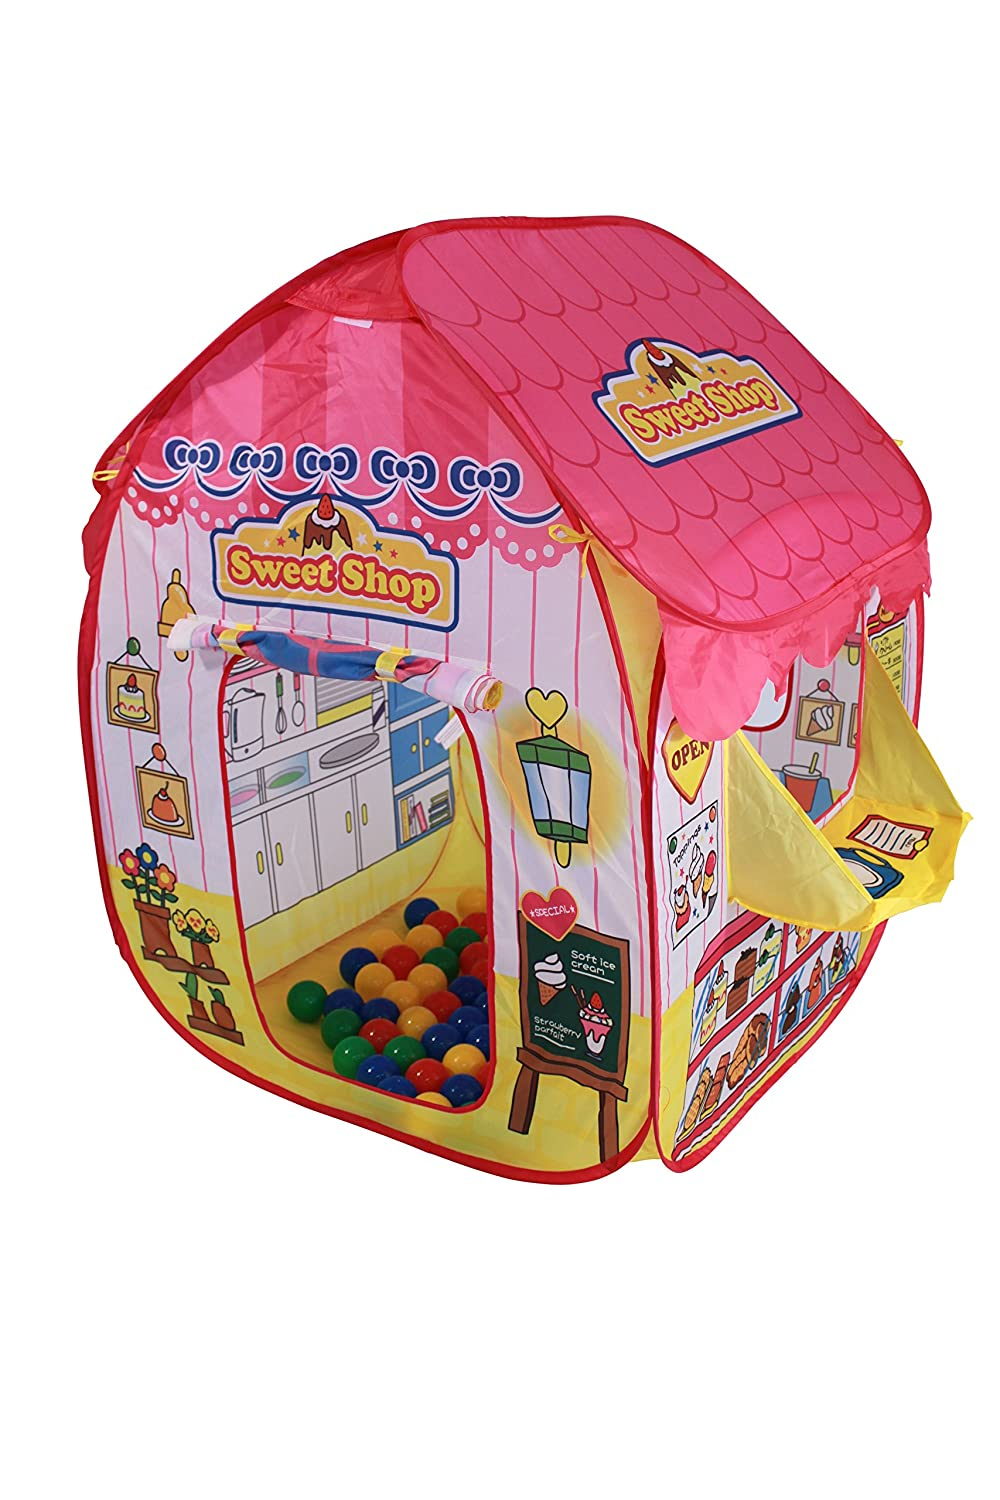 International Buying Services Pop up Sweet Shop Playtent + 100 Brightly Coloured Balls -pop up tent - Kids Tents - Pop up Play tent - Beautifully designed Childrens playtent IBS1008